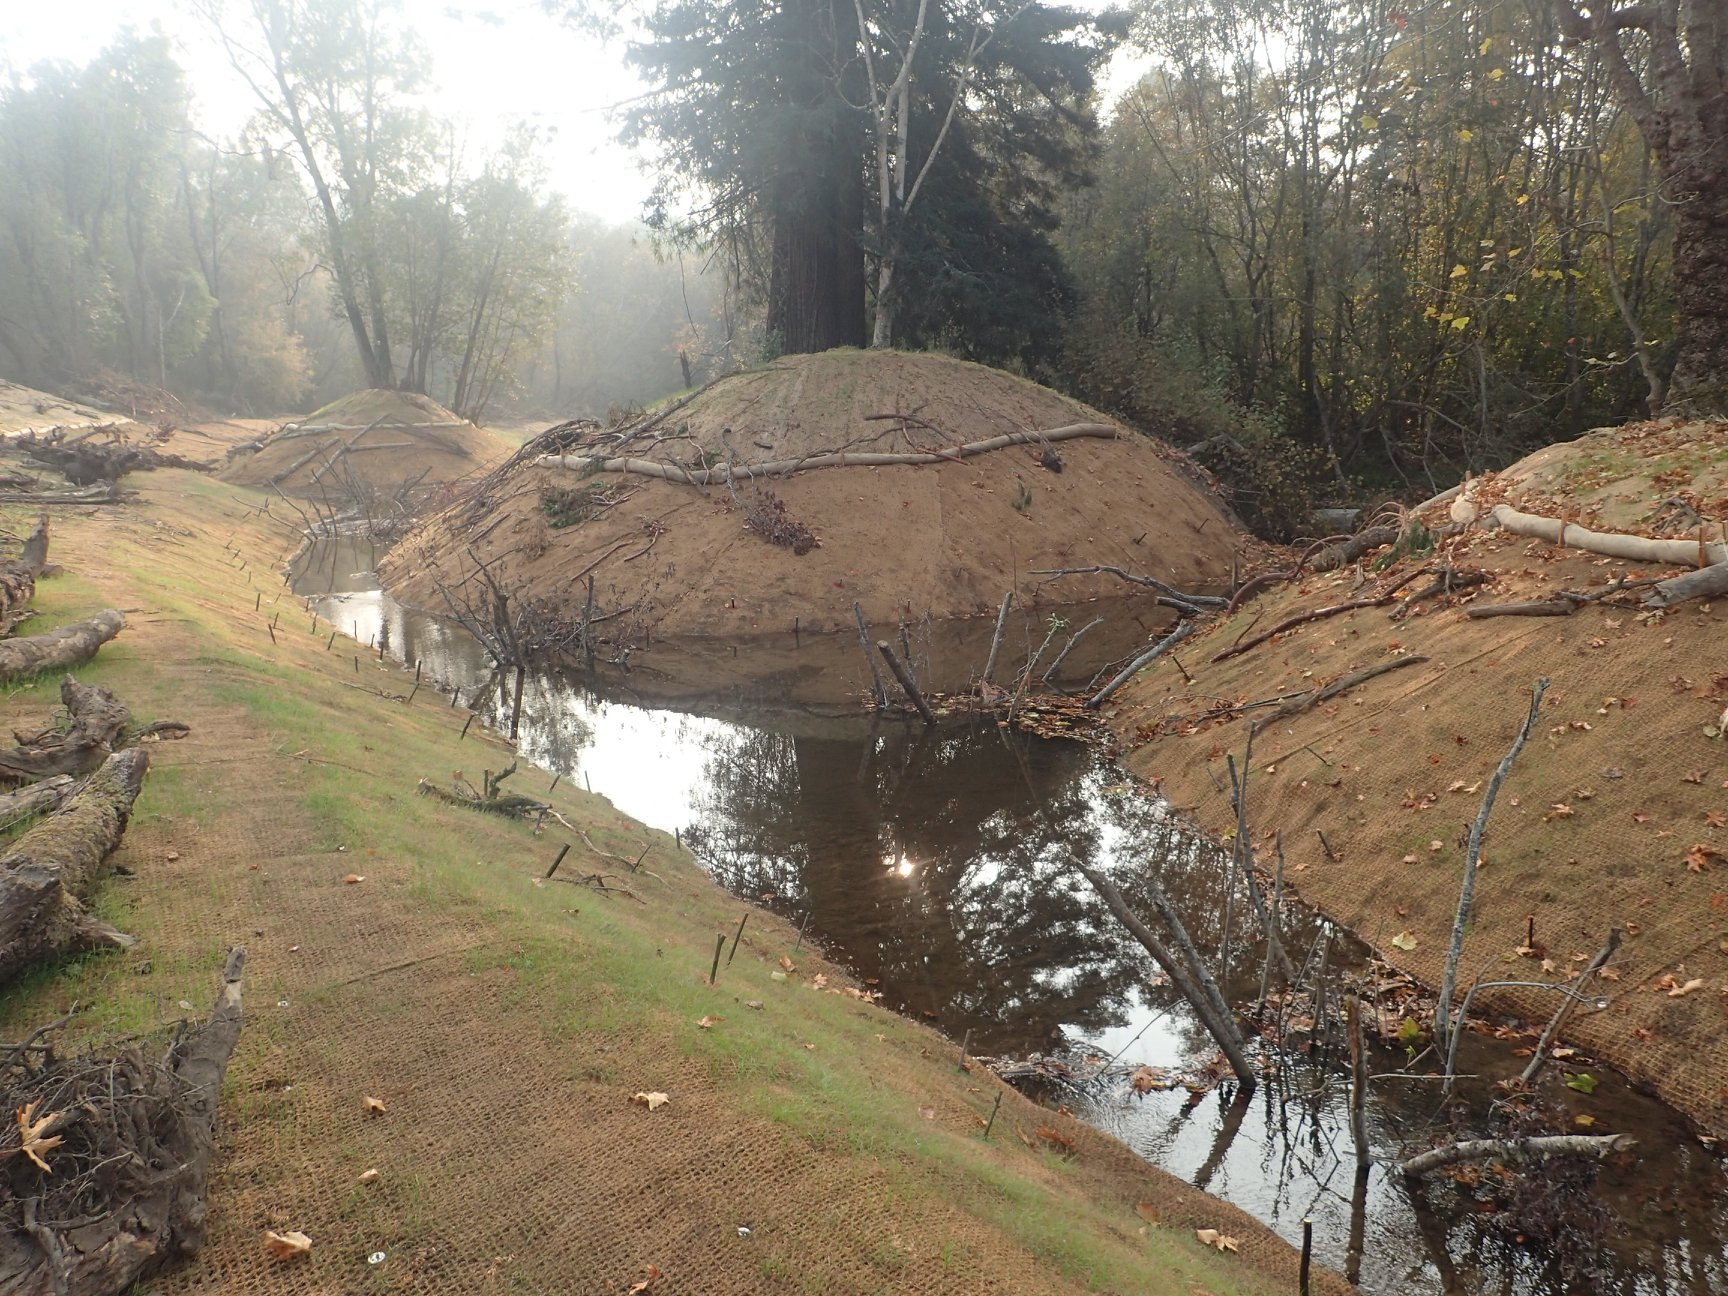 Dam Release, Rain Brings Flowing Water to Floodplain Side Channel for First Time